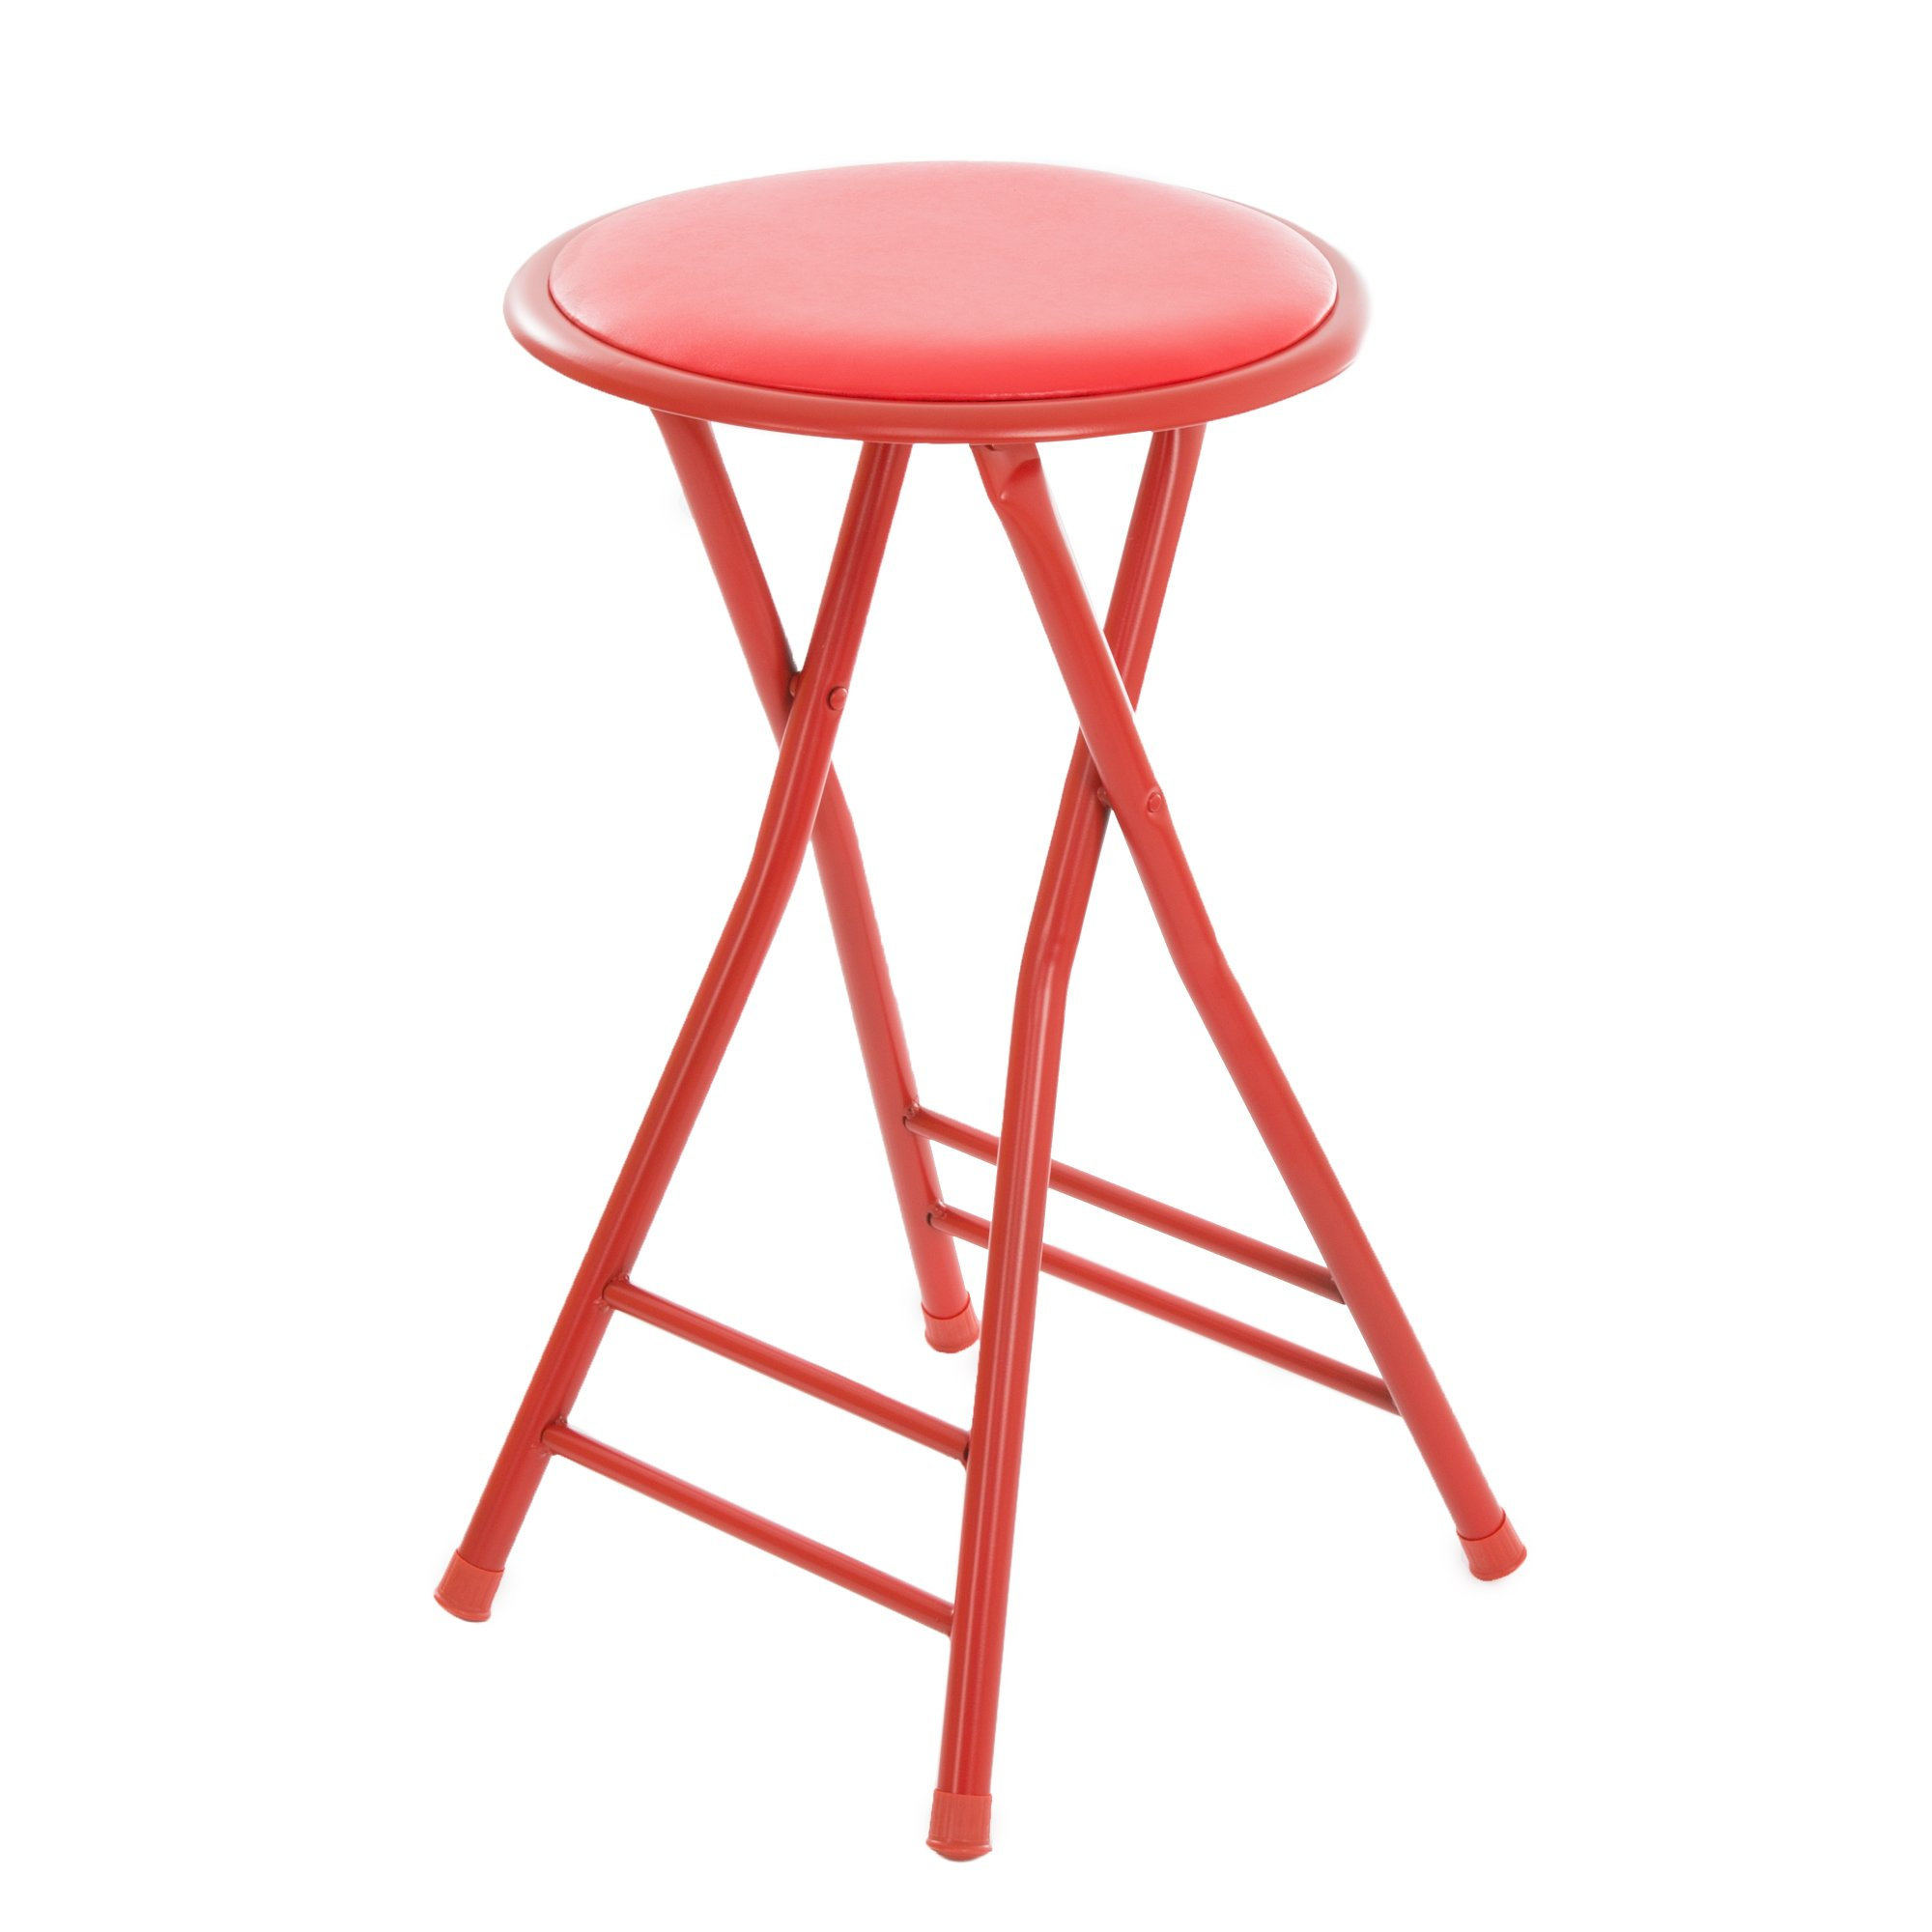 Trademark Home Folding Stool - Heavy Duty 24-Inch Collapsible Padded Round Stool with 300 Pound Limit for Dorm, Rec or Gameroom (Red) by Trademark Home Collection